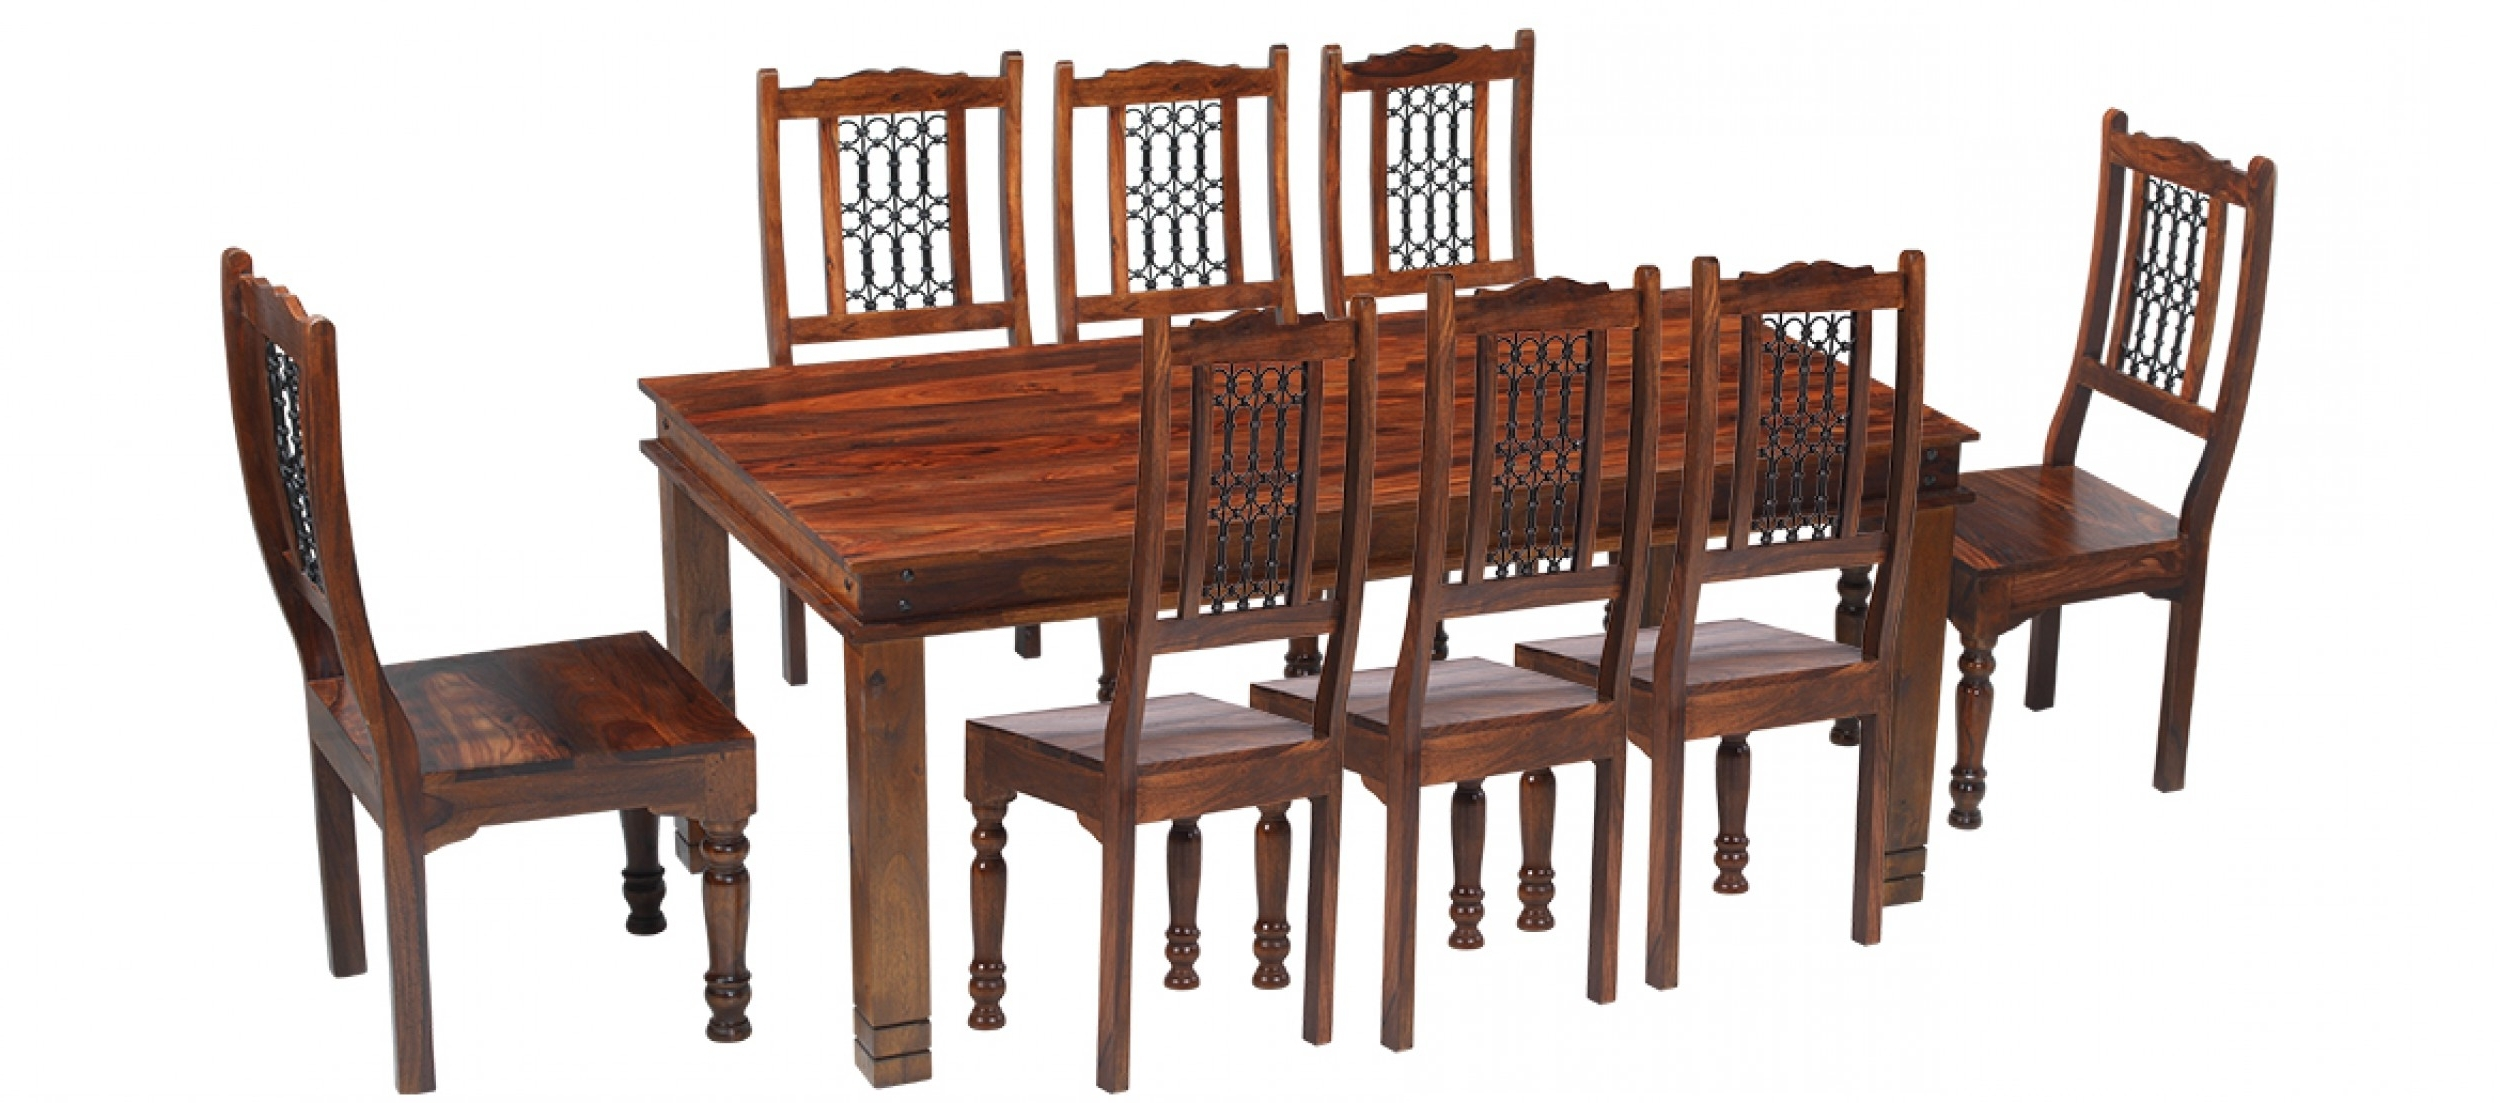 Dining Tables Chairs For Well Known Jali Sheesham 200 Cm Chunky Dining Table And 8 Chairs (View 7 of 25)